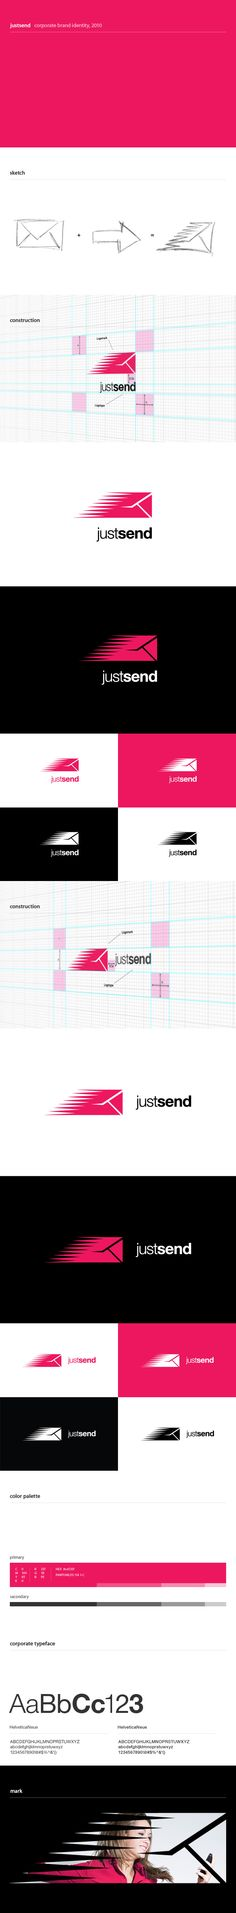 Logo design process for JustSend